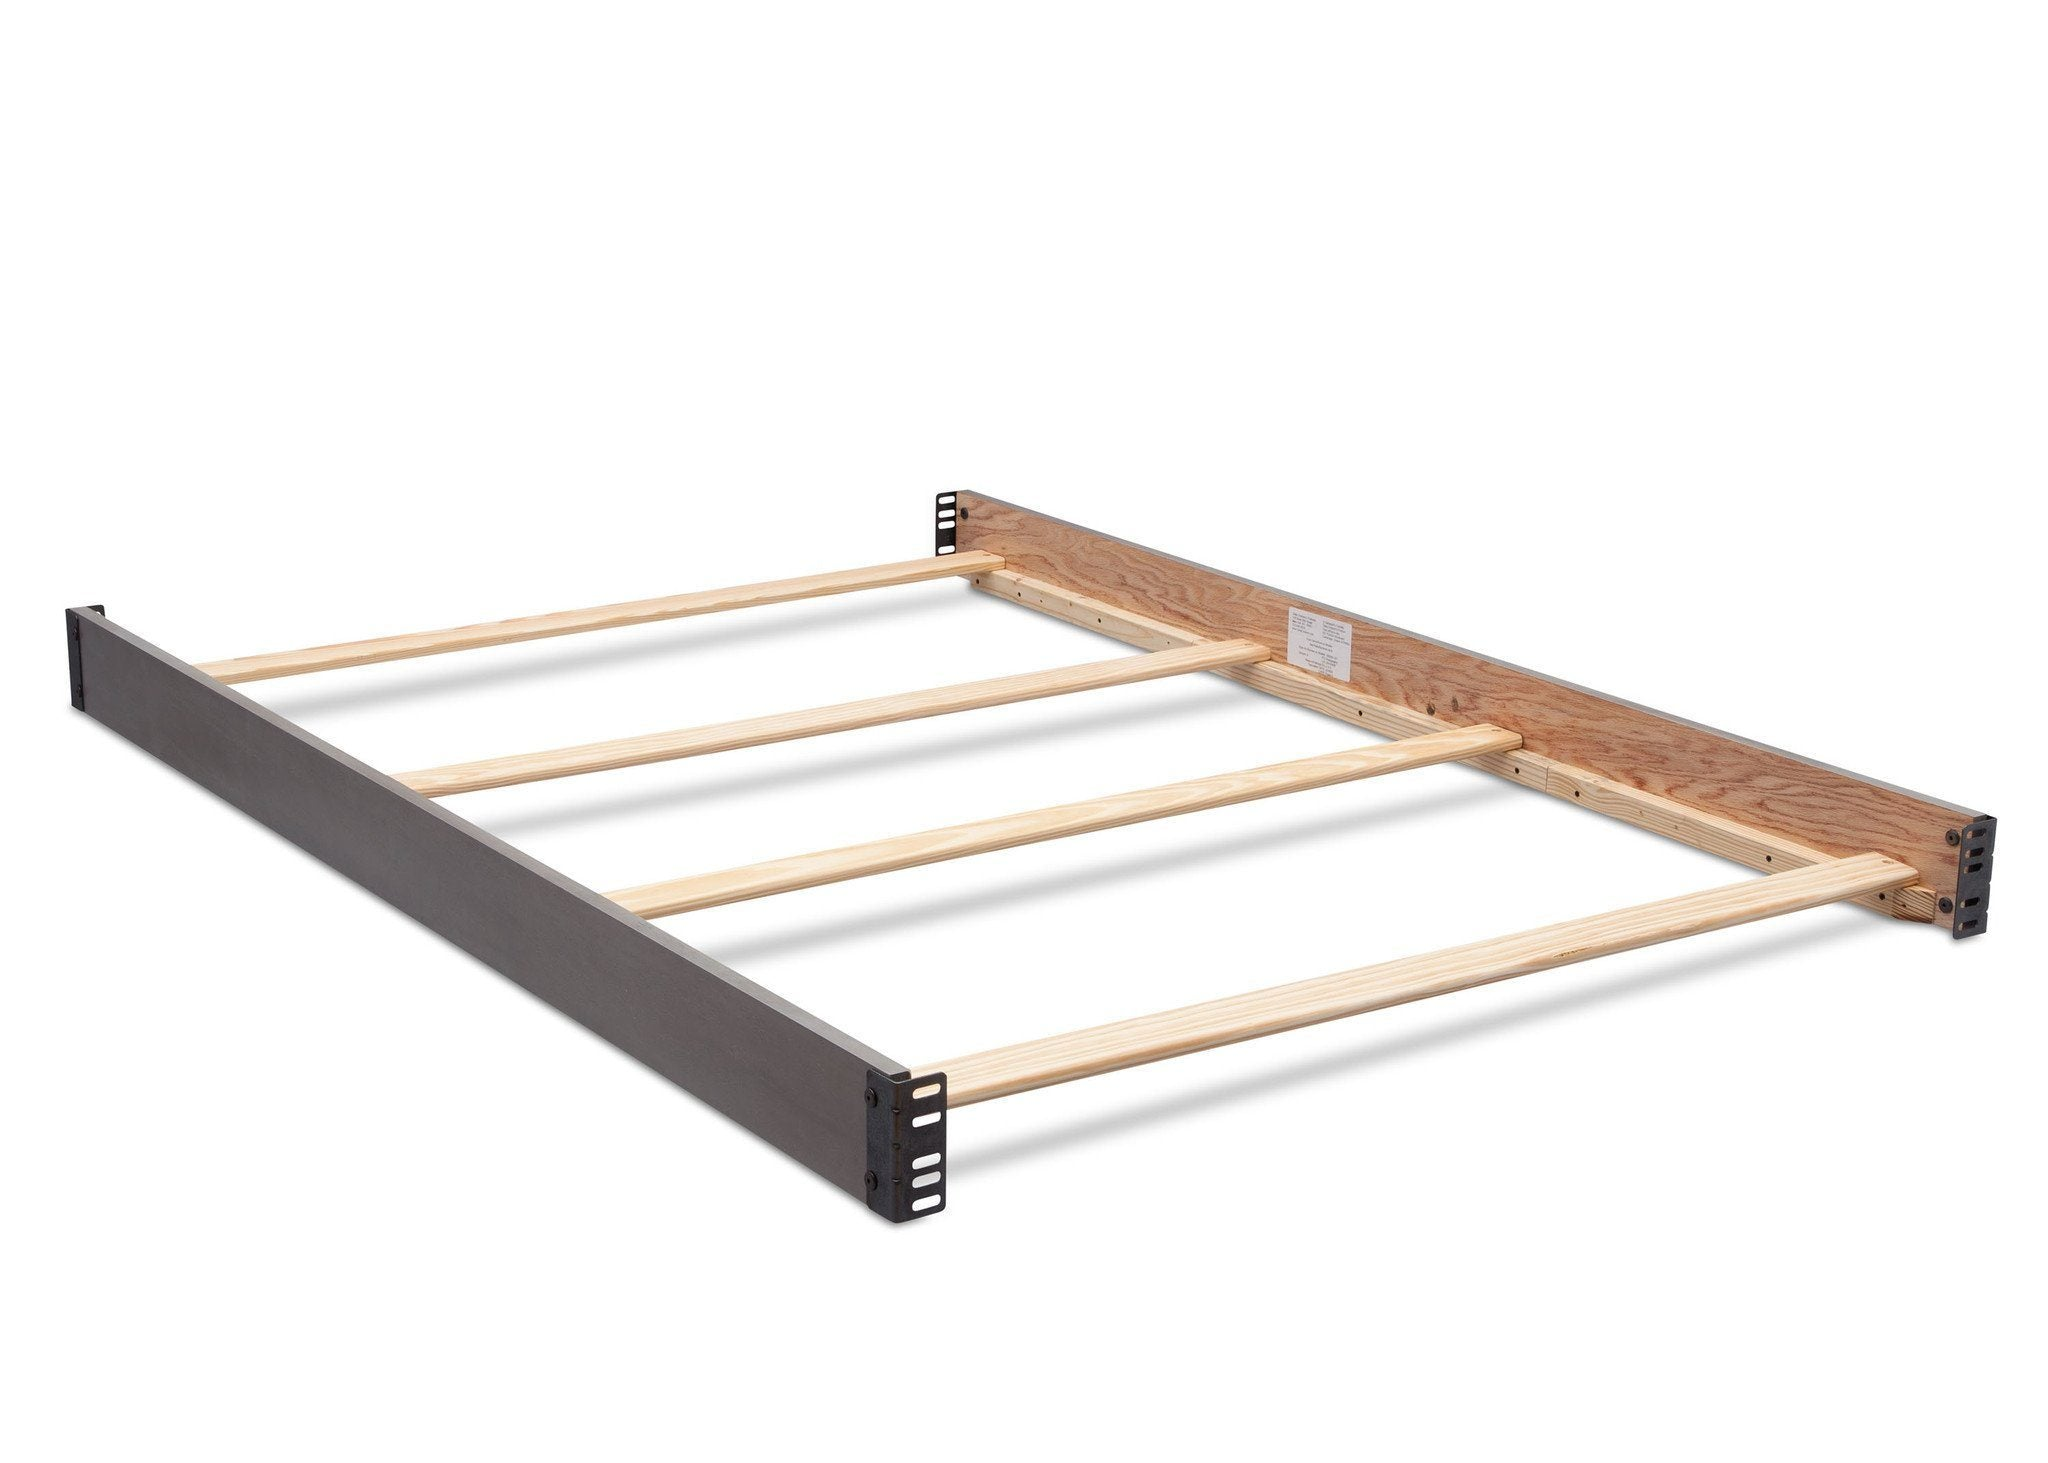 Simmons Kids Storm (161) Full Size Wood Bed Rails (180050) d1d for Bedford 4-in-1 Convertible Crib